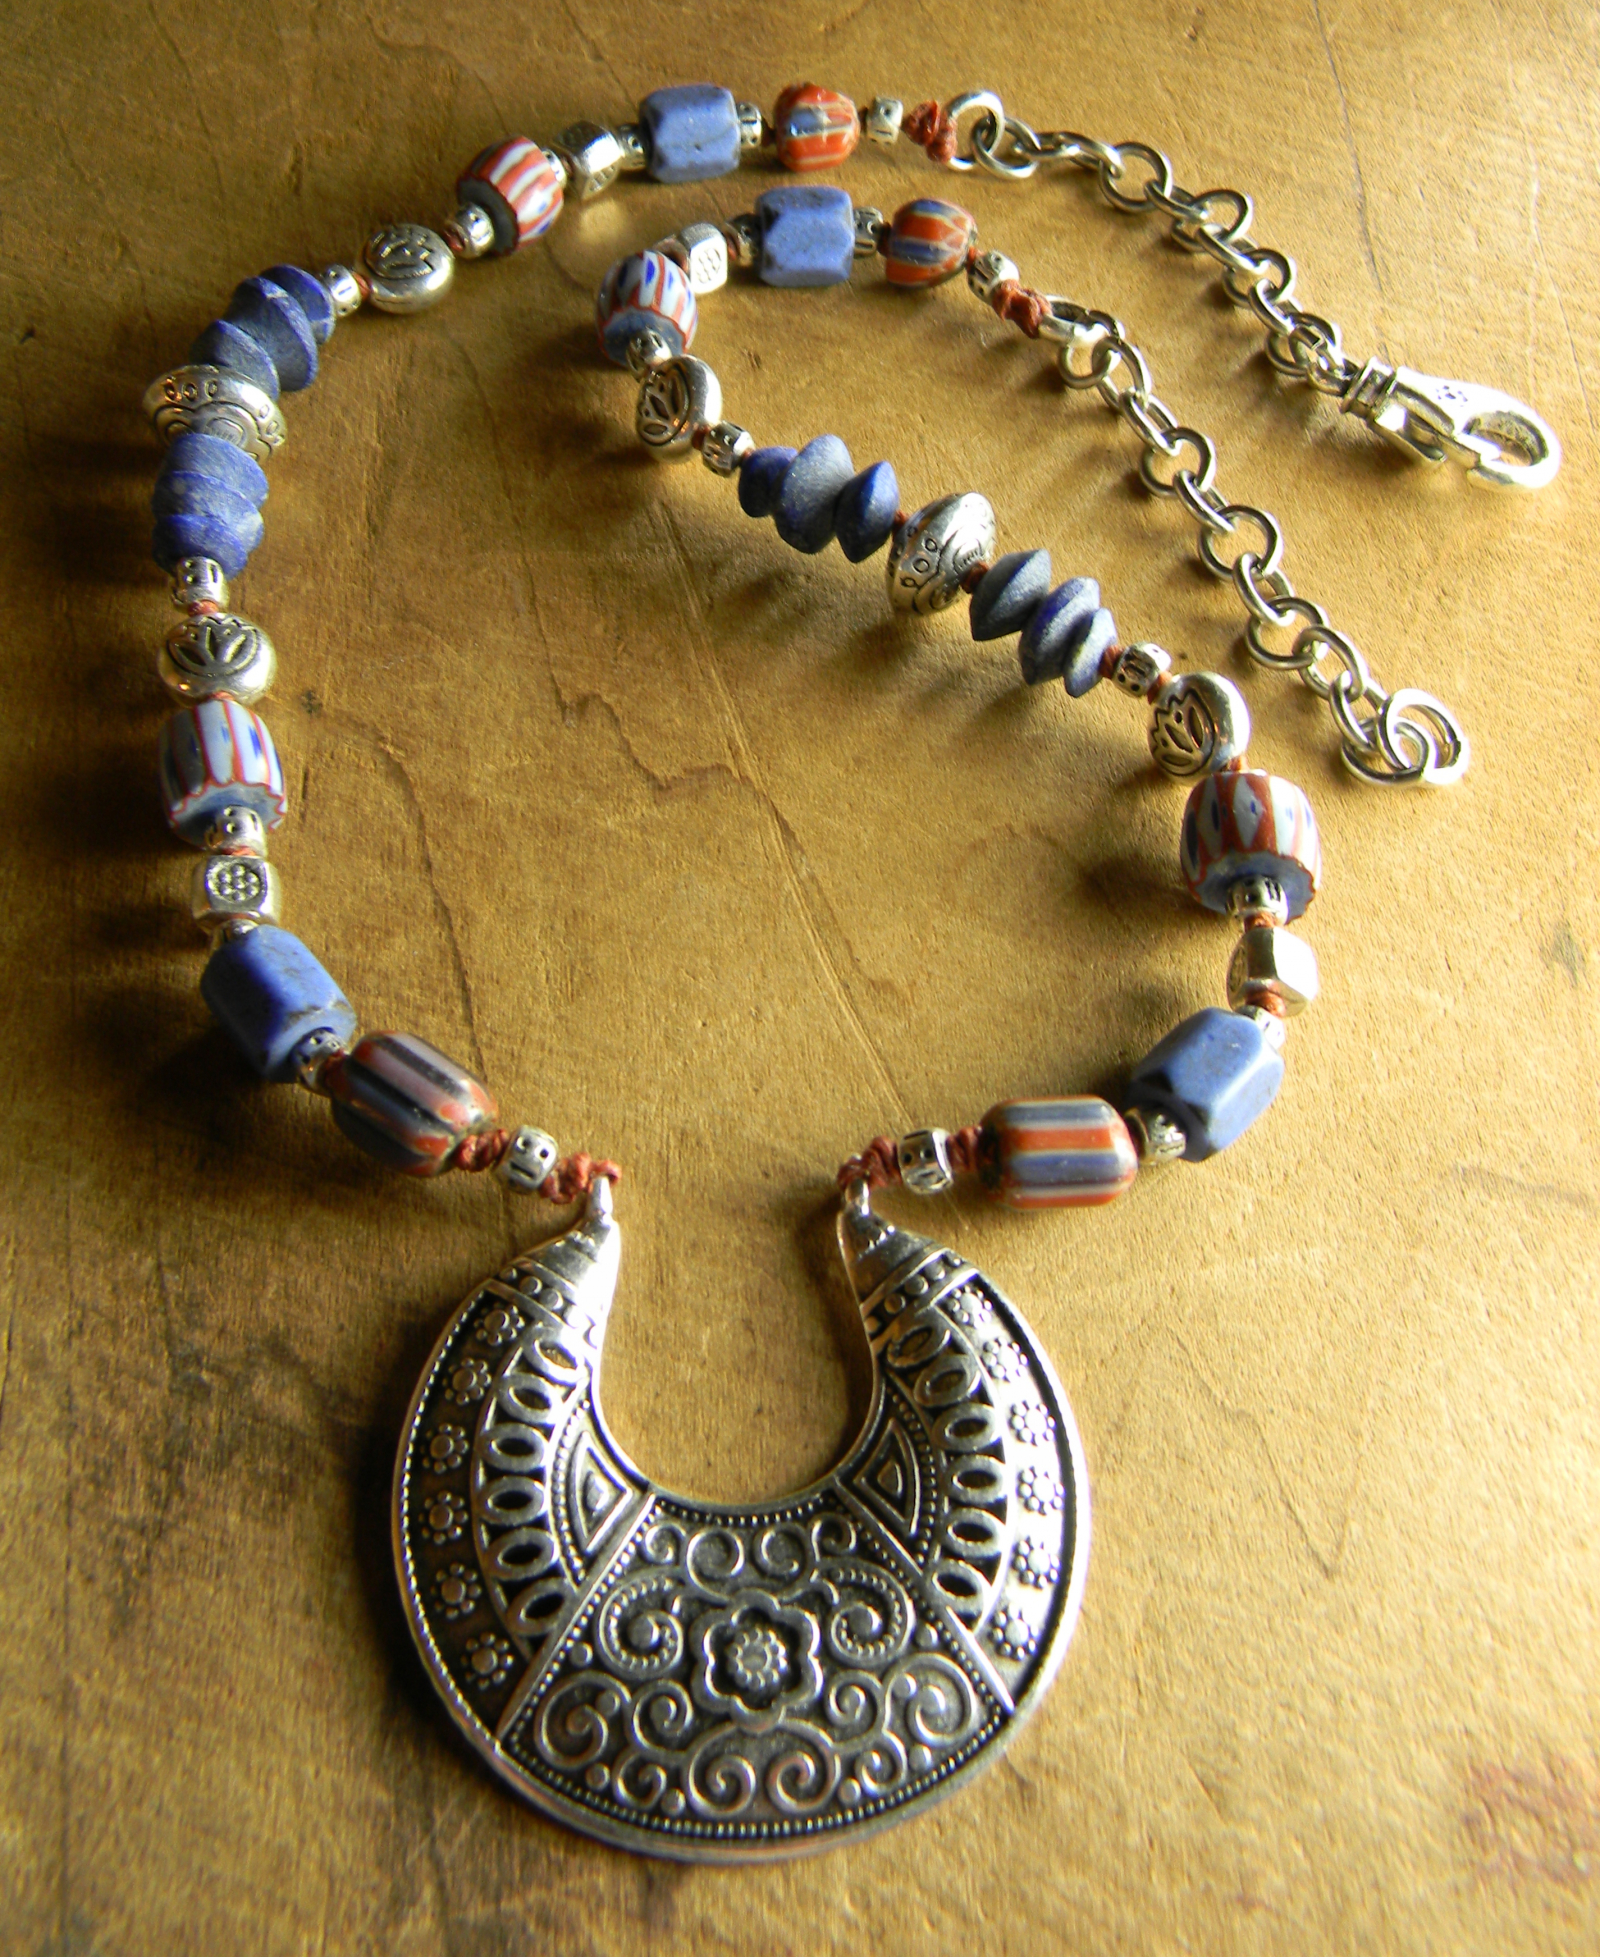 from coins necklace antique trade beads silver elegant guatemala chachal guatemalan bead mexican vintage jewelry